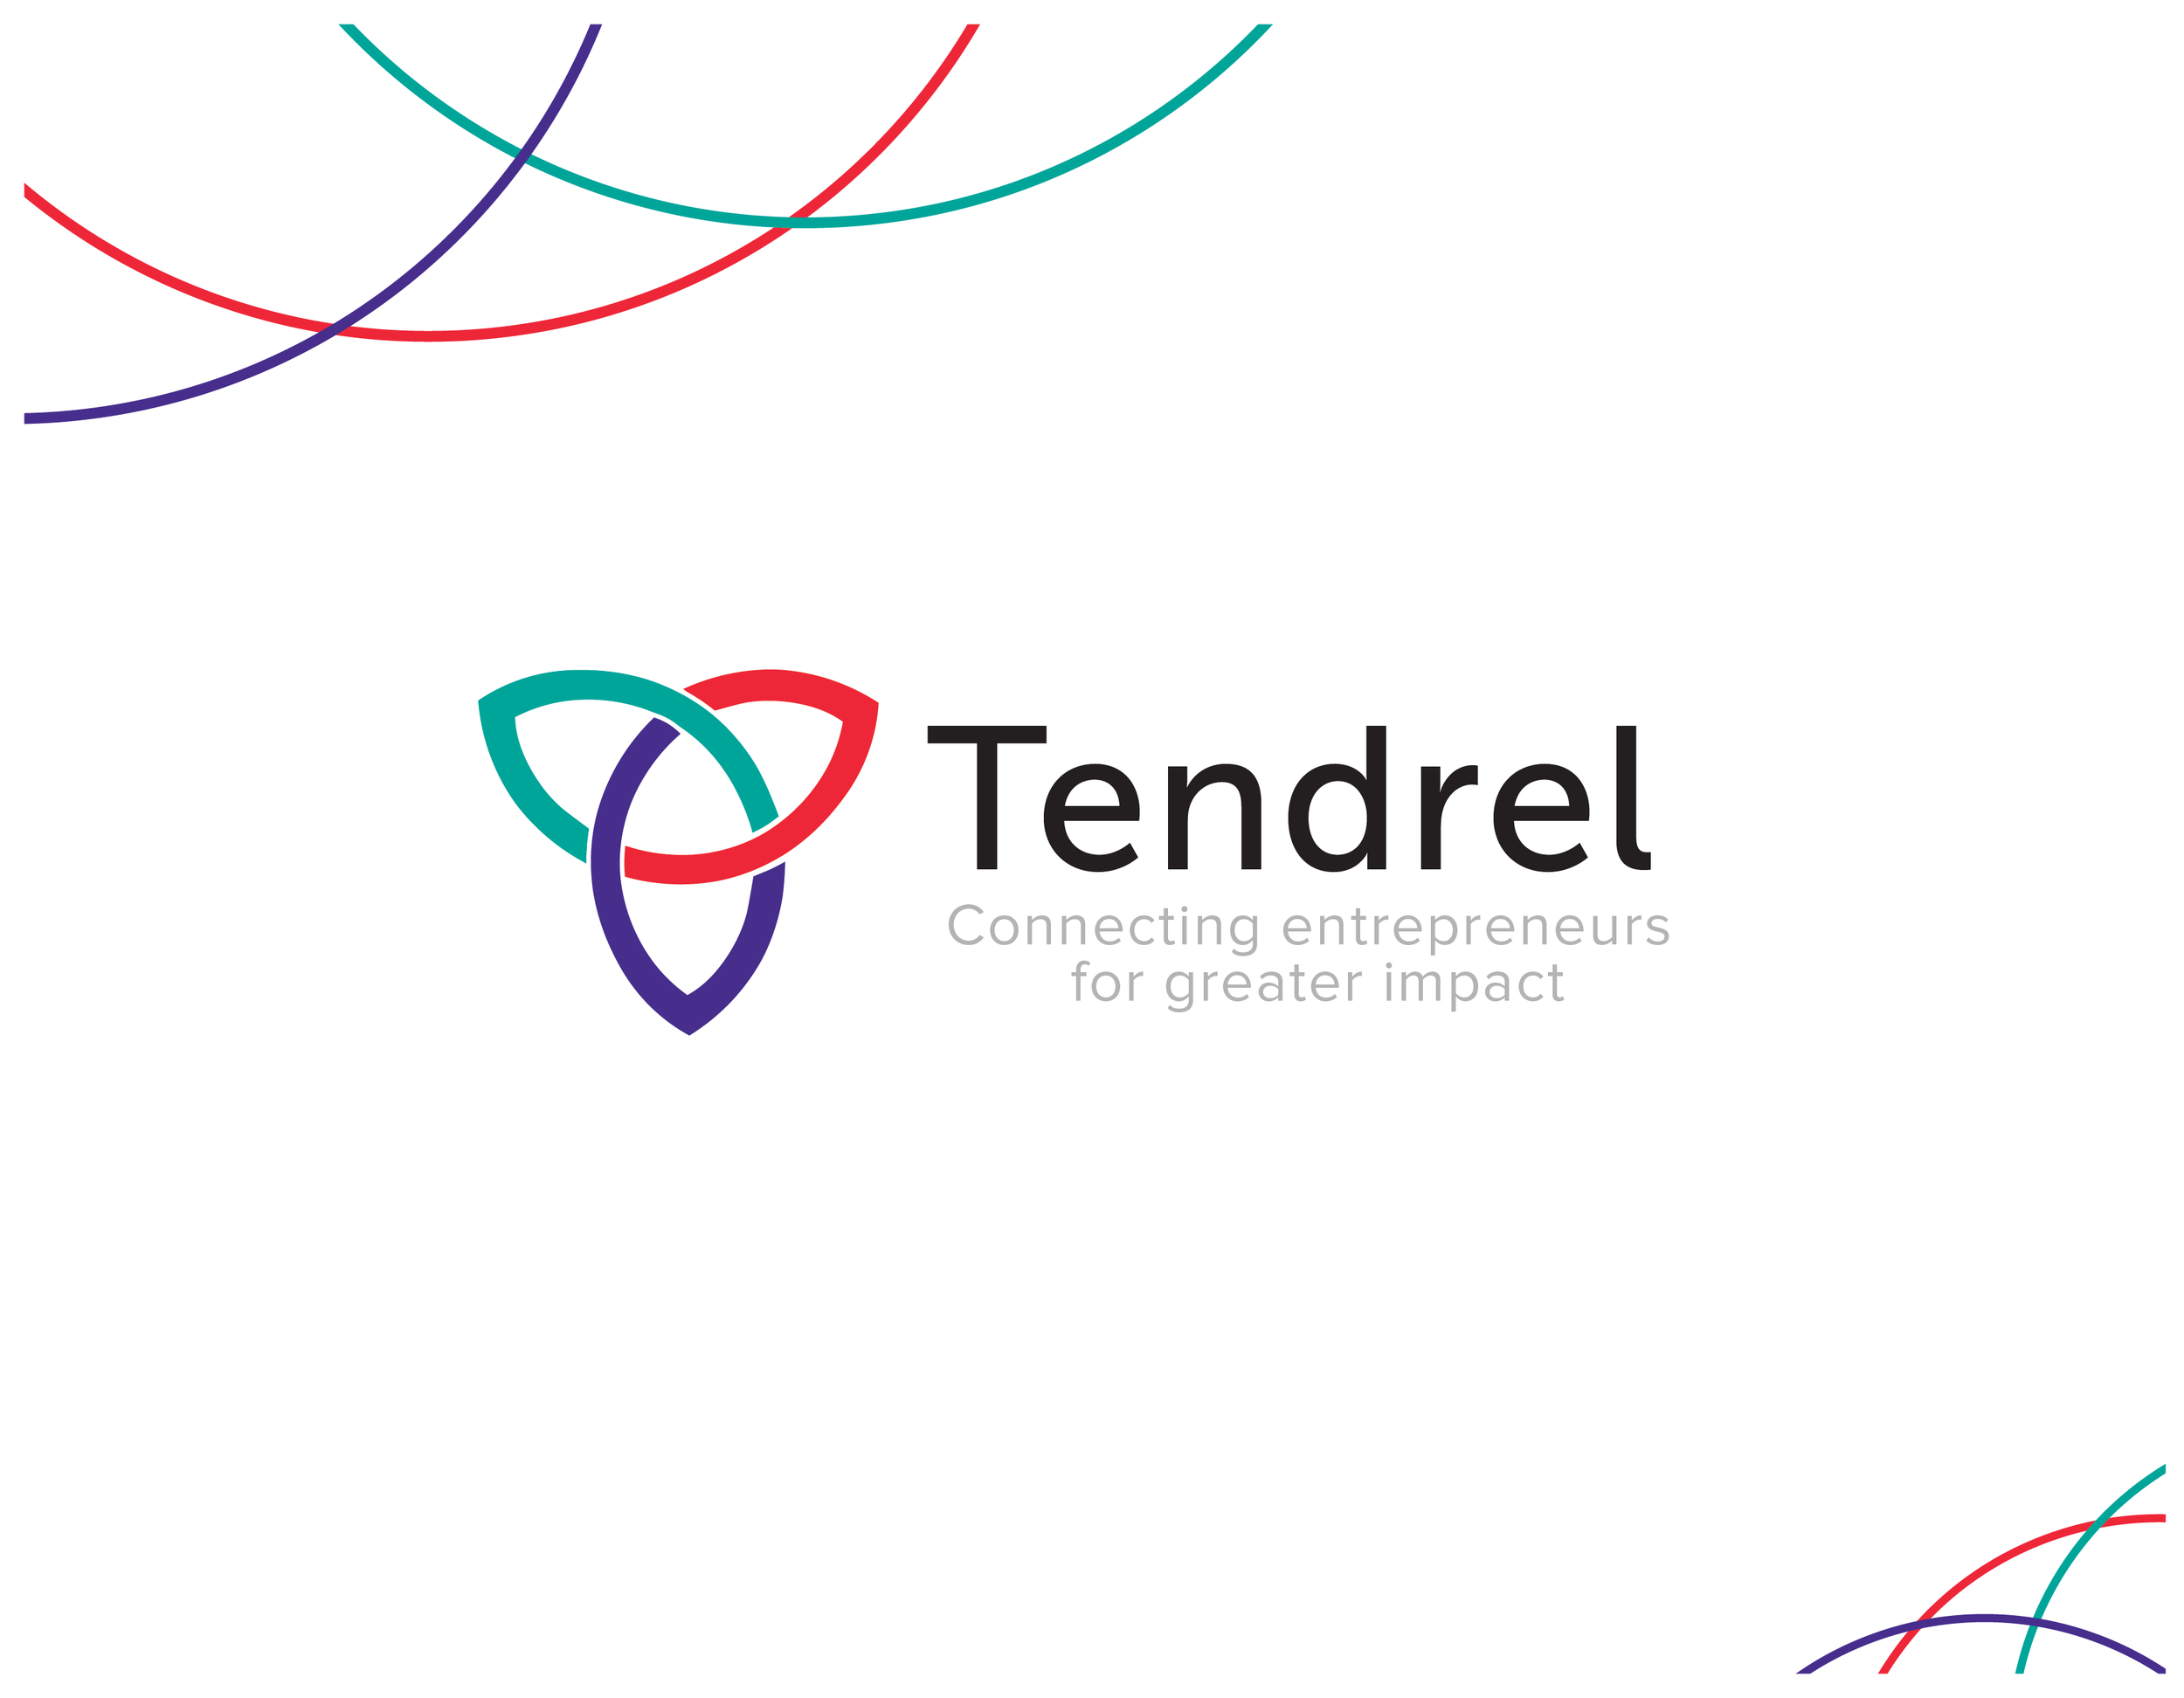 tendrel ppt-01.png